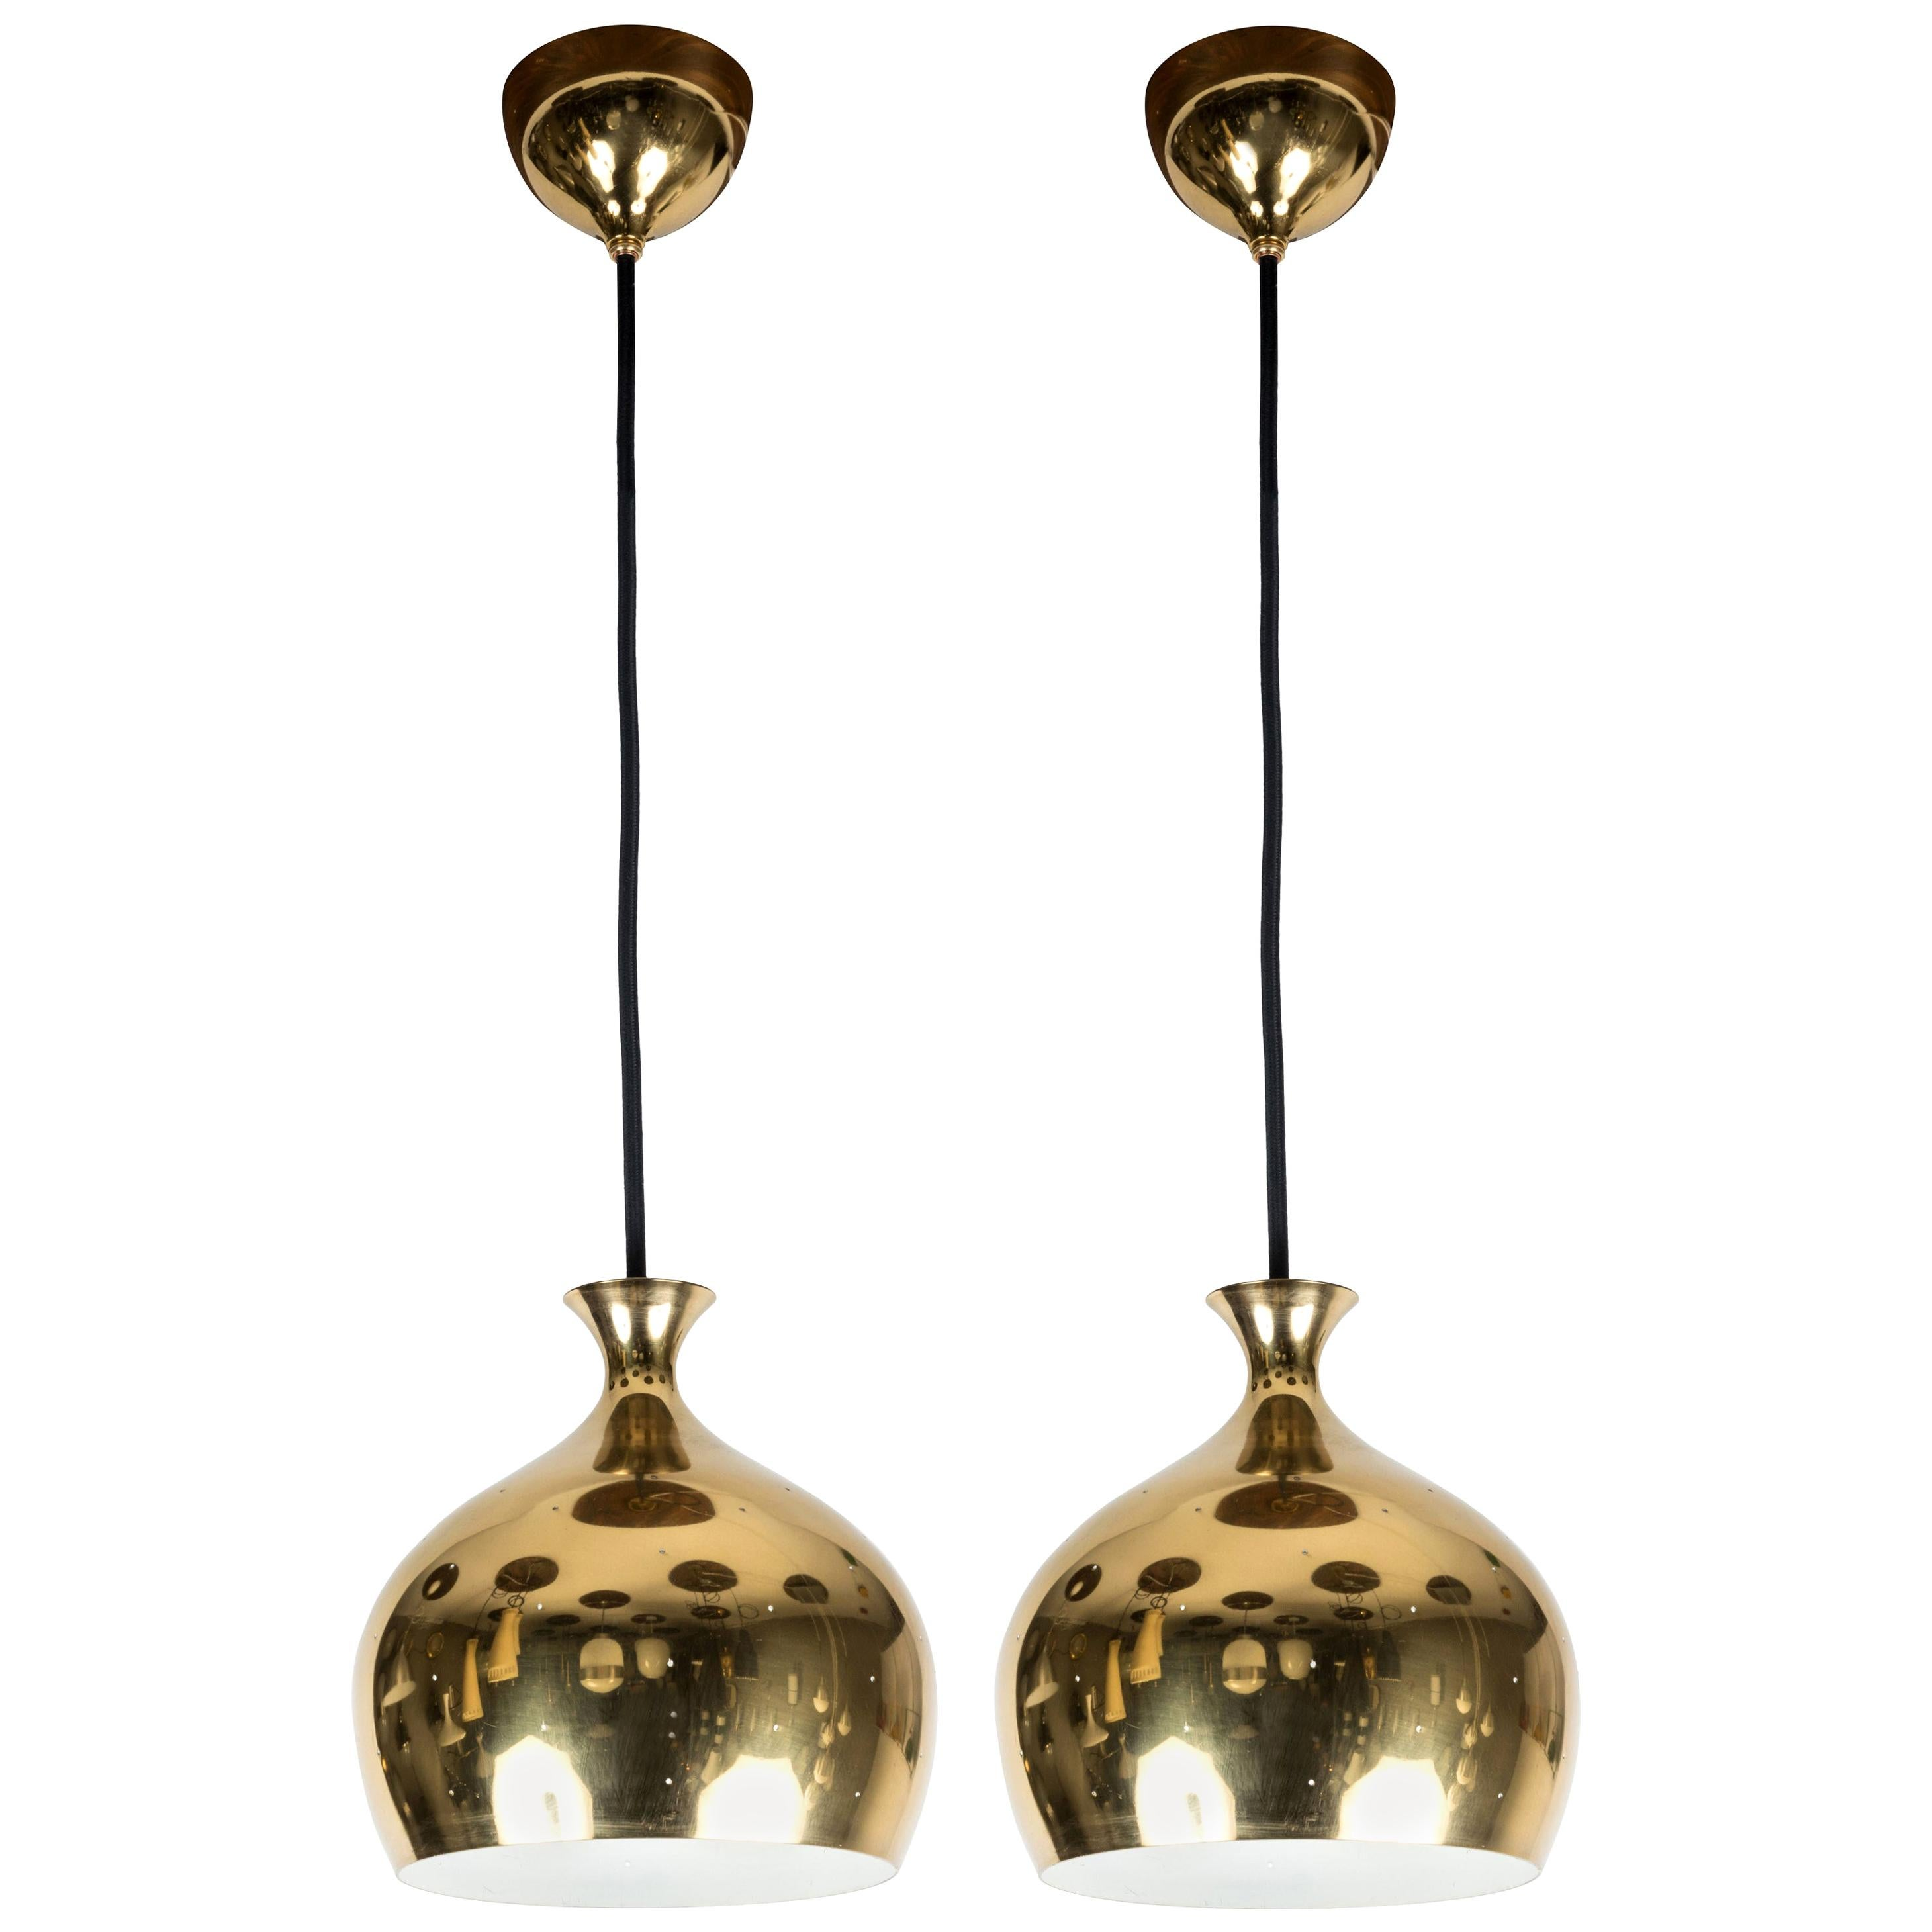 1960s Brass Perforated 'Onion' Pendants by Helge Zimdal for Falkenberg